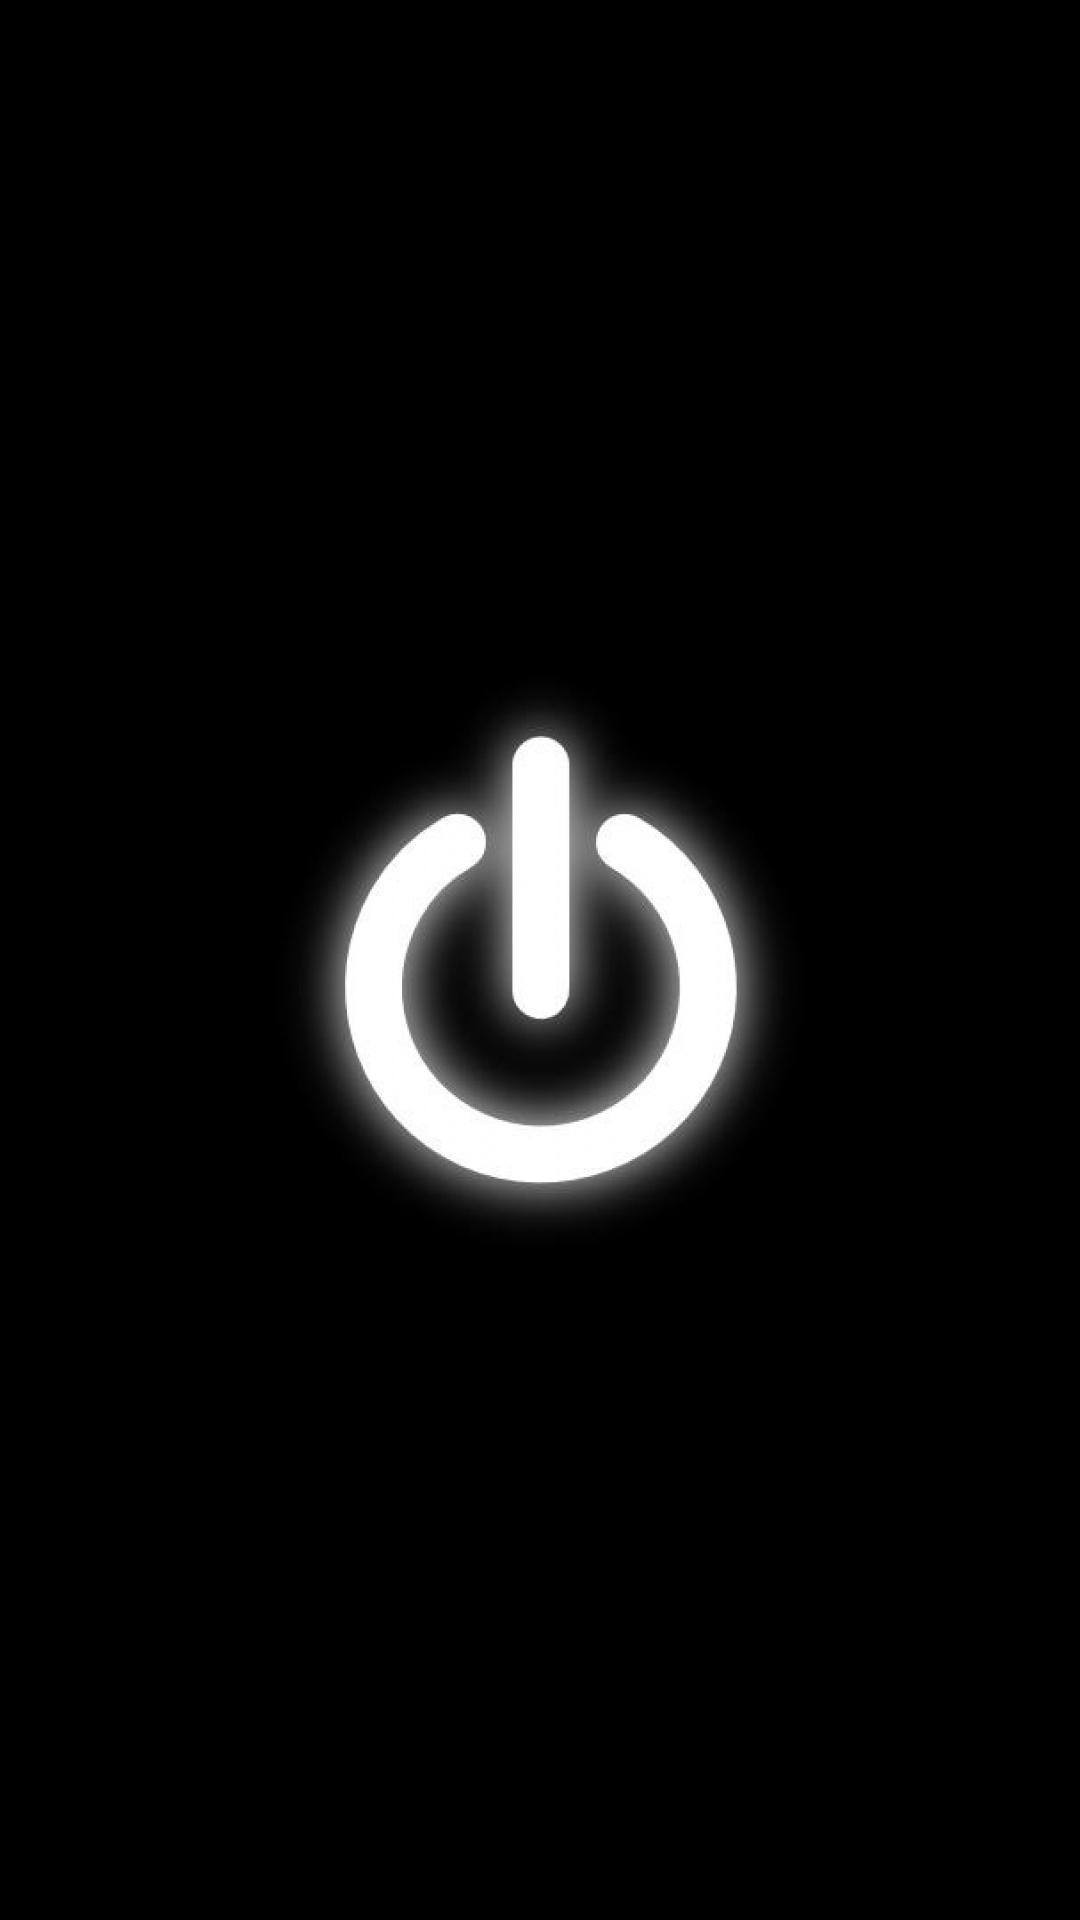 Dark HD Wallpaper for Android - APK ...